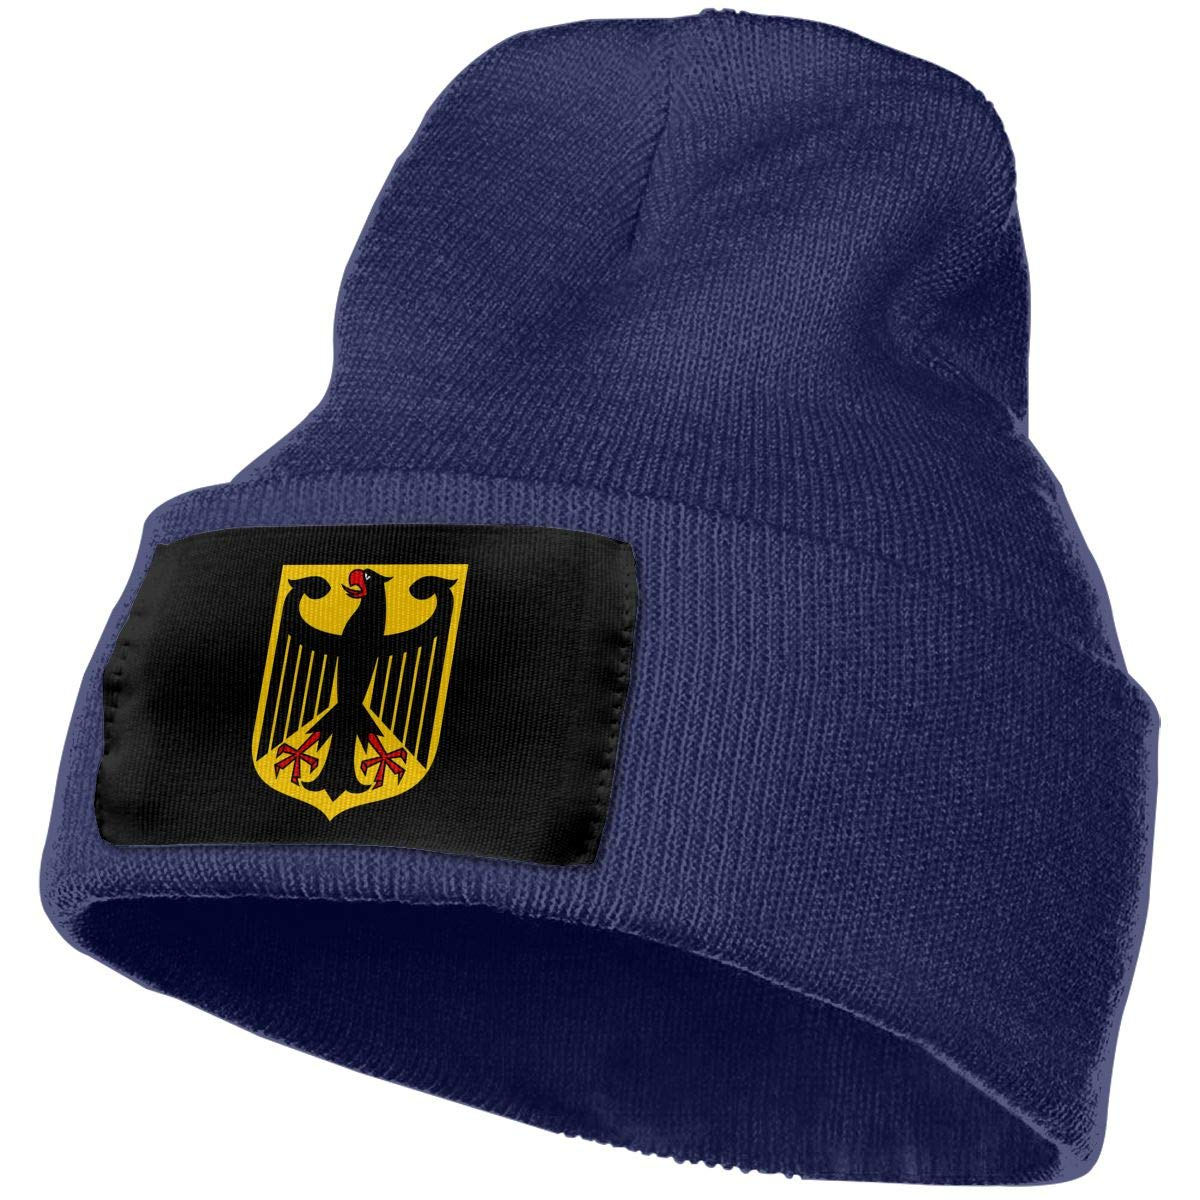 Coat of Arms of Germany DFKD JKFD Unisex 3D Knitted Hat Skull Hat Beanie Cap